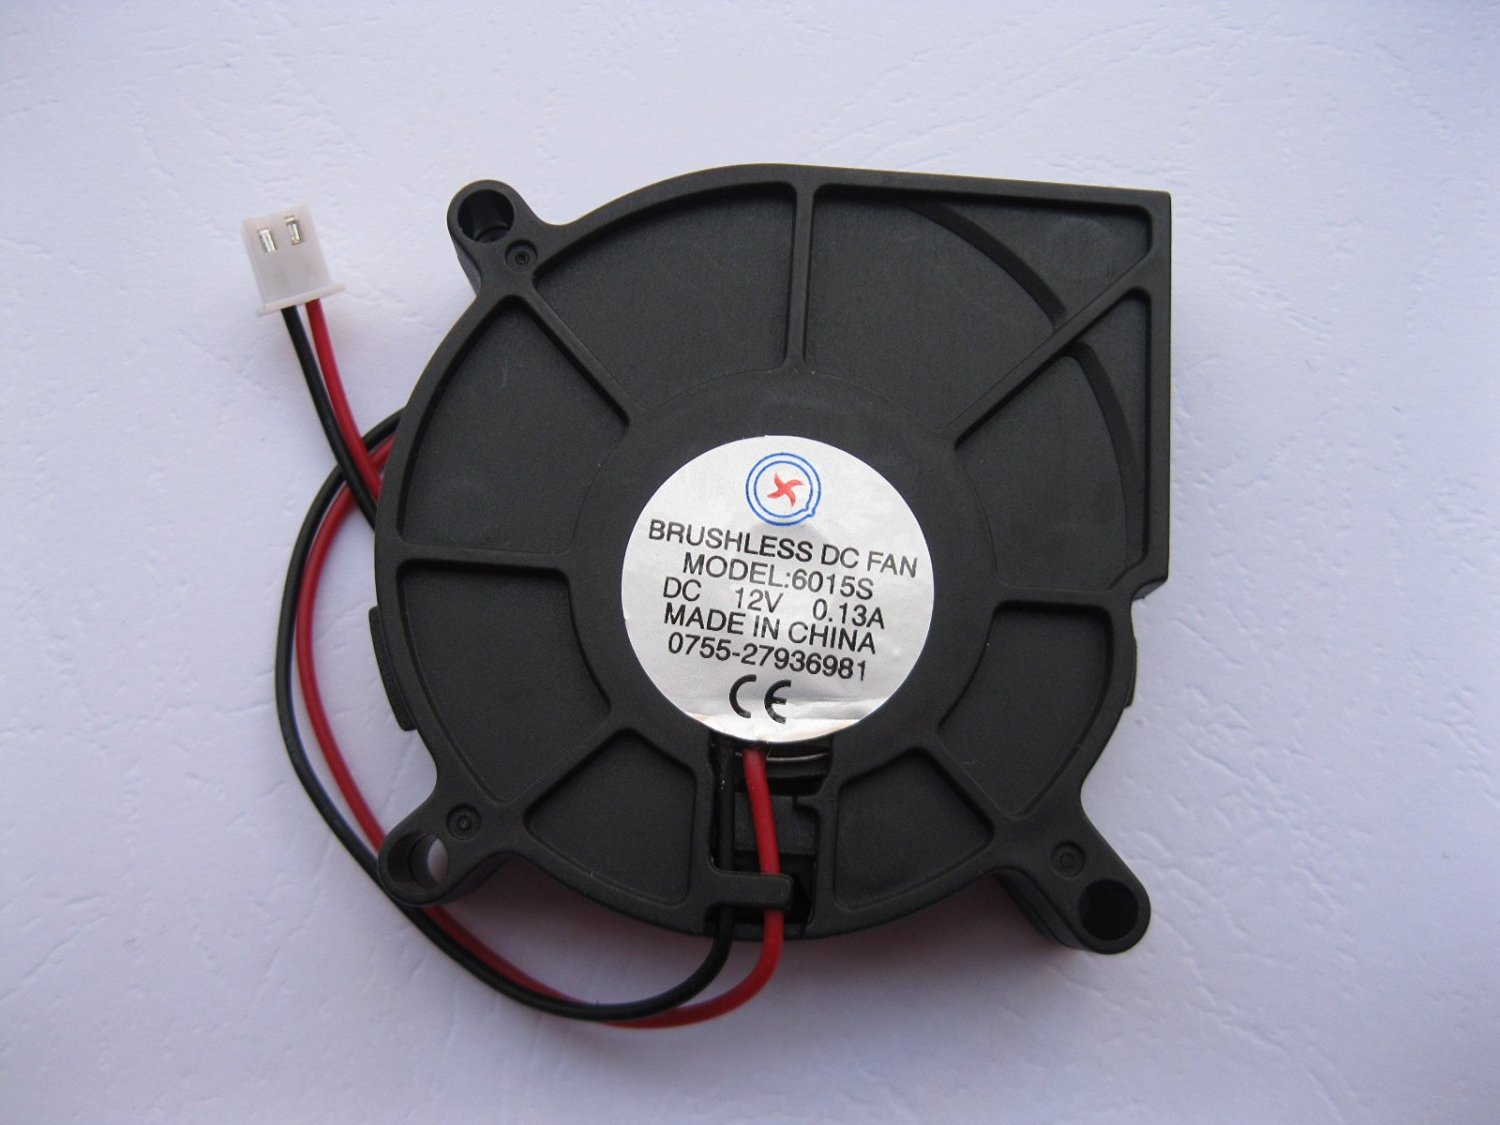 1 Pcs DC Blower Fan 12V 4020 2 Pin Black 40x20mm Brushless DC Cooling Blower Fan